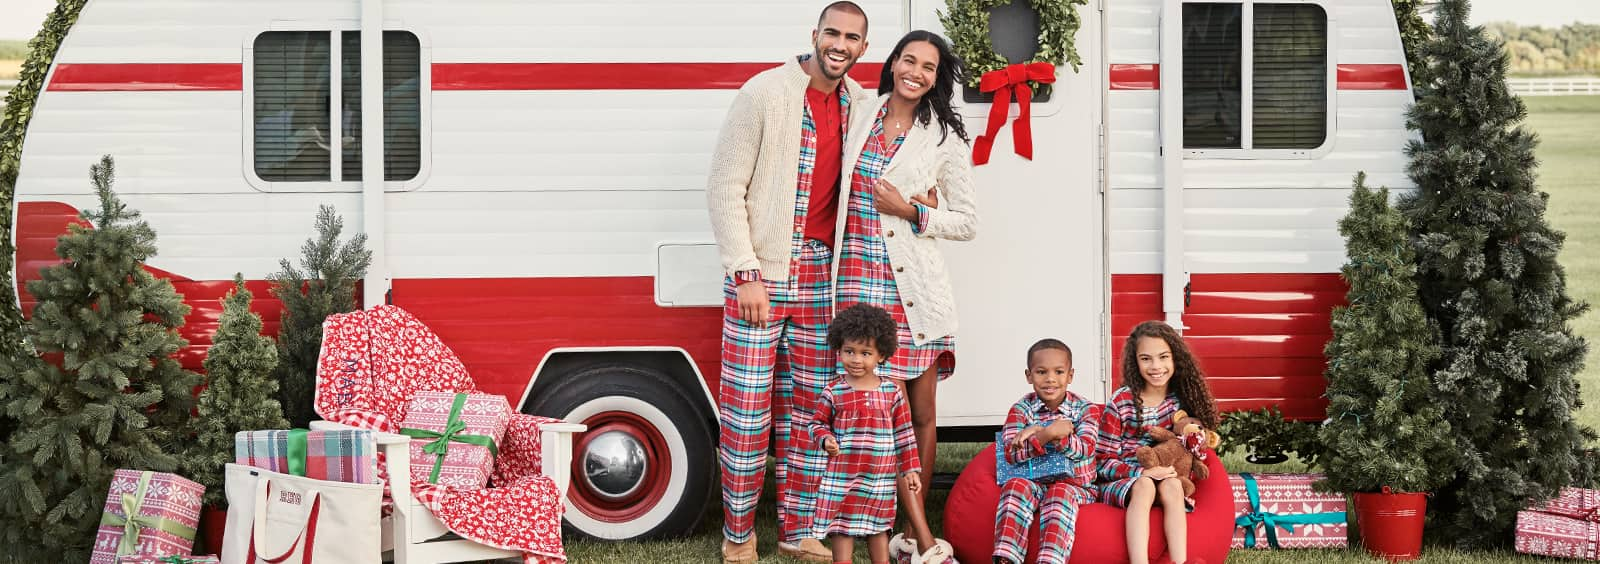 Best Pajamas for Christmas Morning | Lands' End